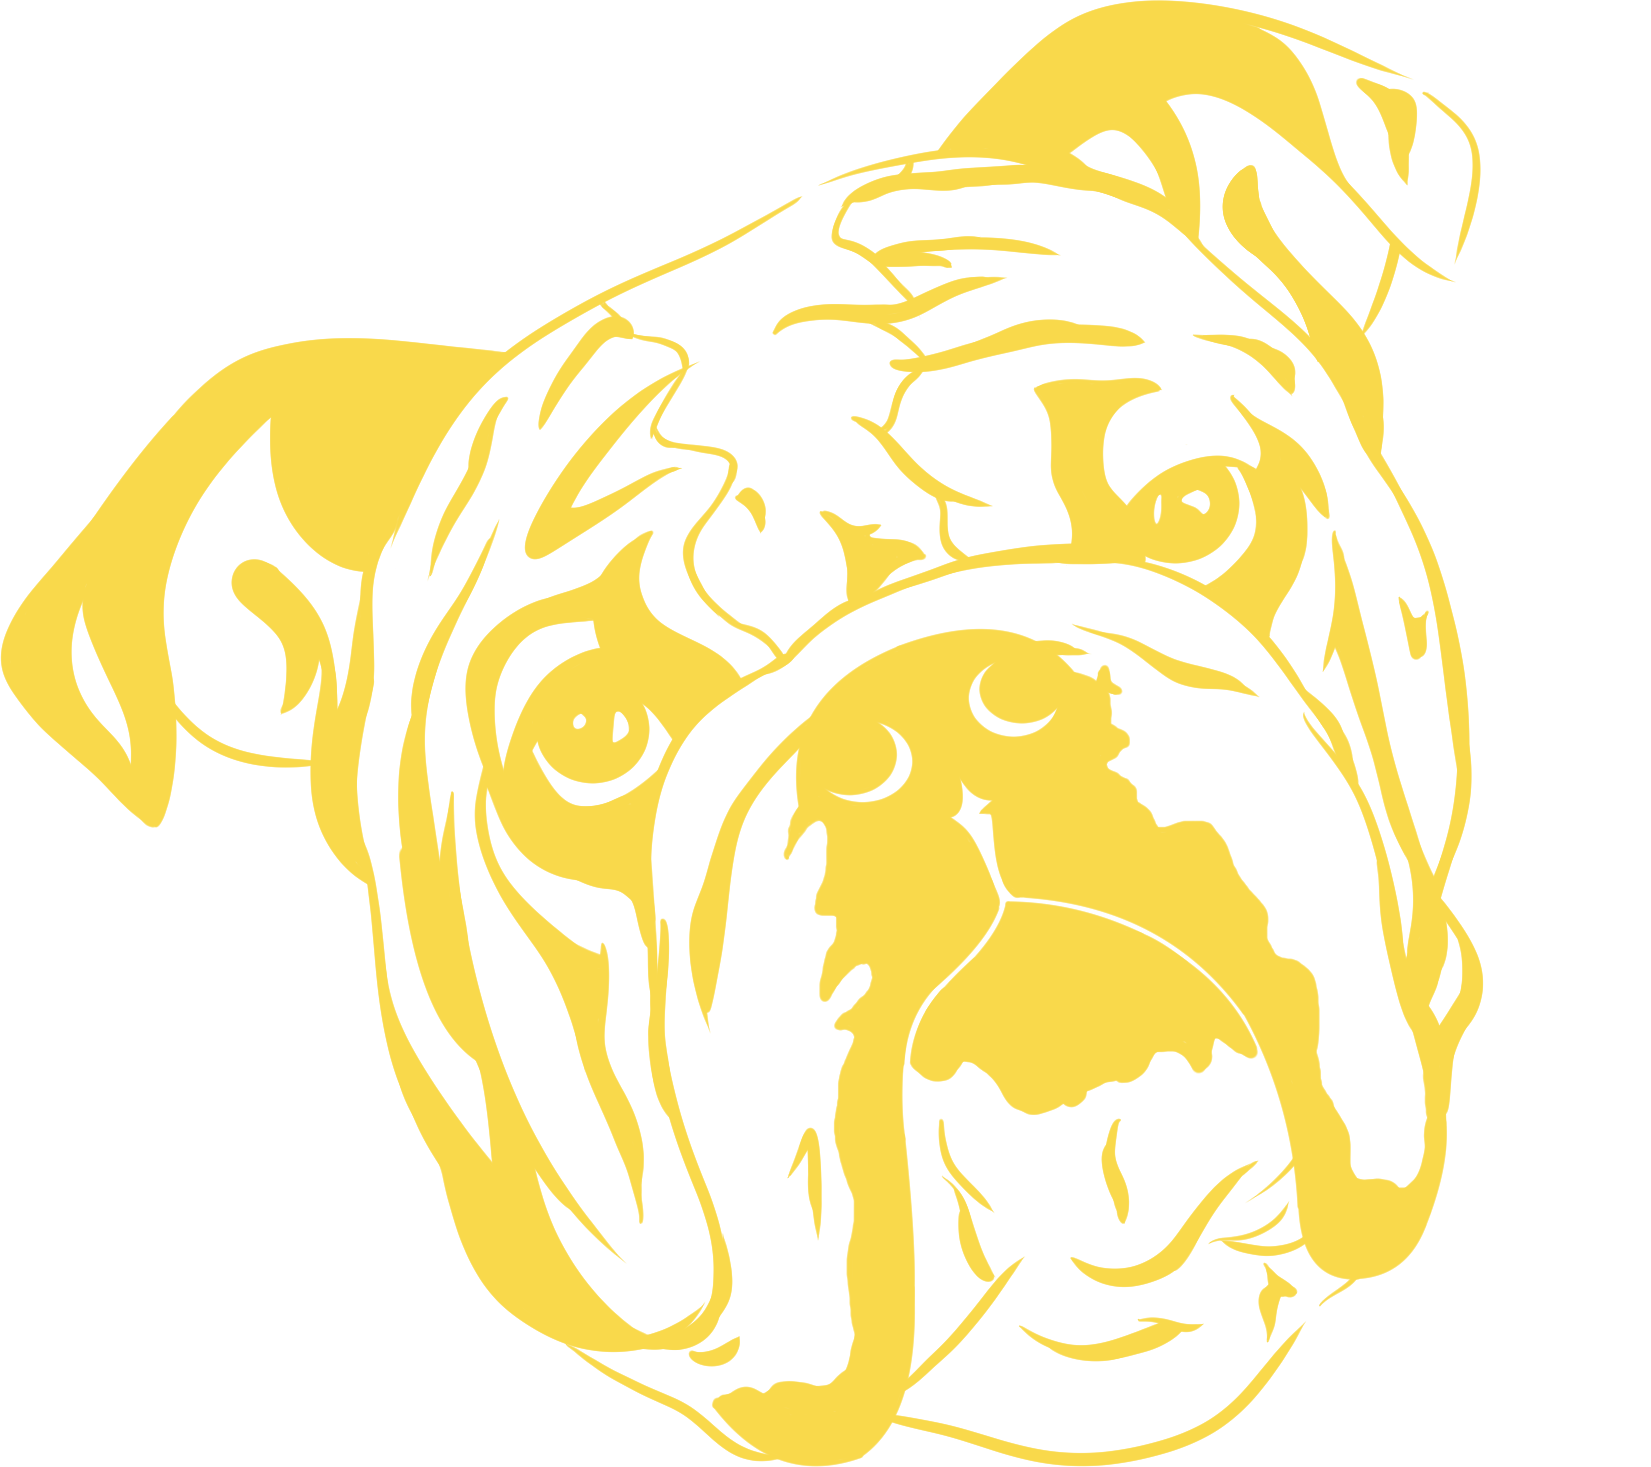 bulldog sketch yellow